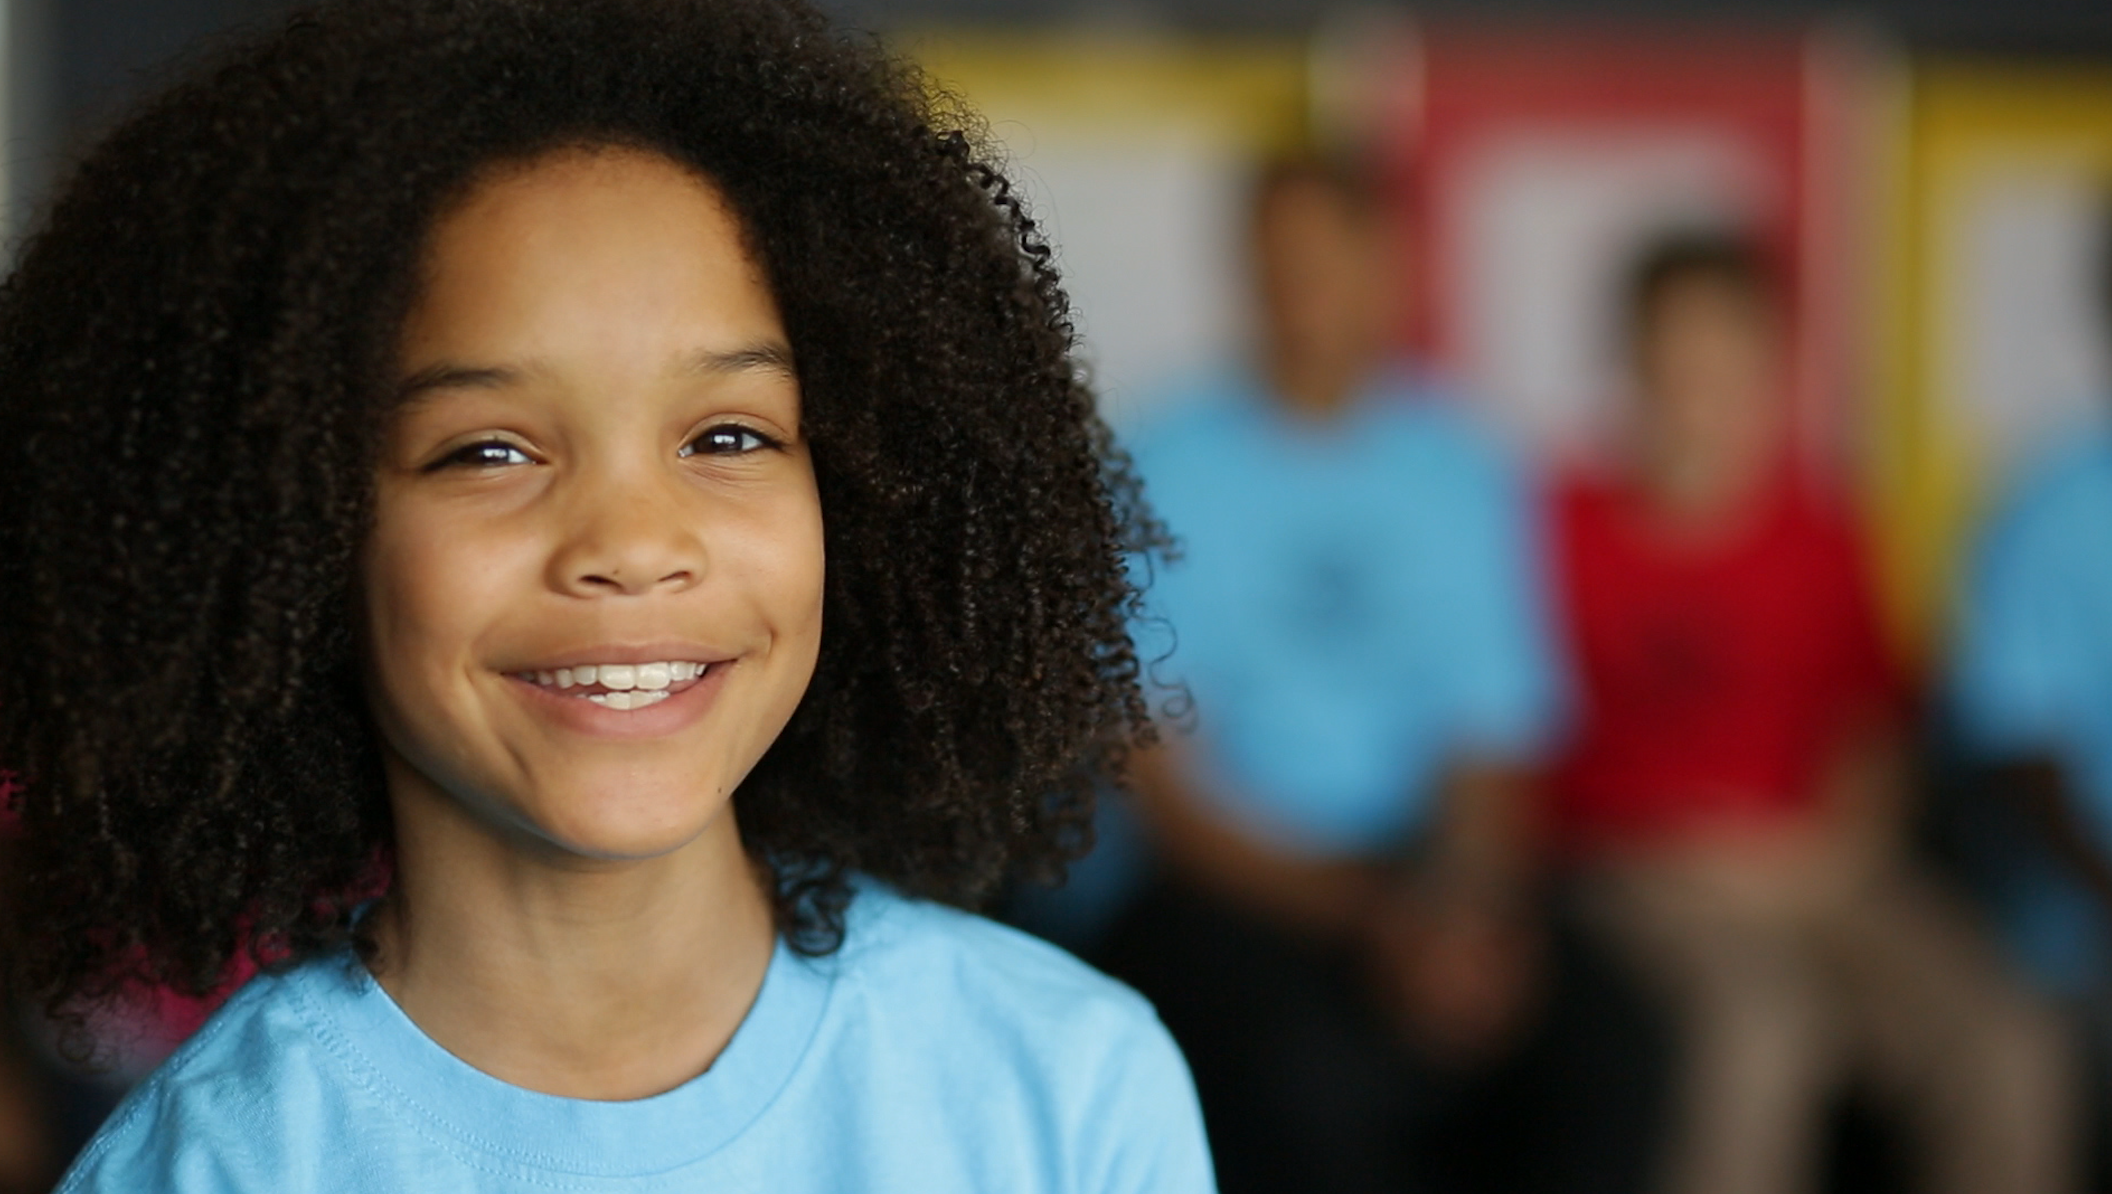 Become a Boys & Girls Clubs Member! - Great Futures Start Here! Clubs provide a fun, safe and constructive environment for kids and teens during out-of-school hours. For a membership fee of only $20 a year, the Clubs offer programs and services to help young people succeed in school, develop leadership skills, and maintain healthy lifestyles.